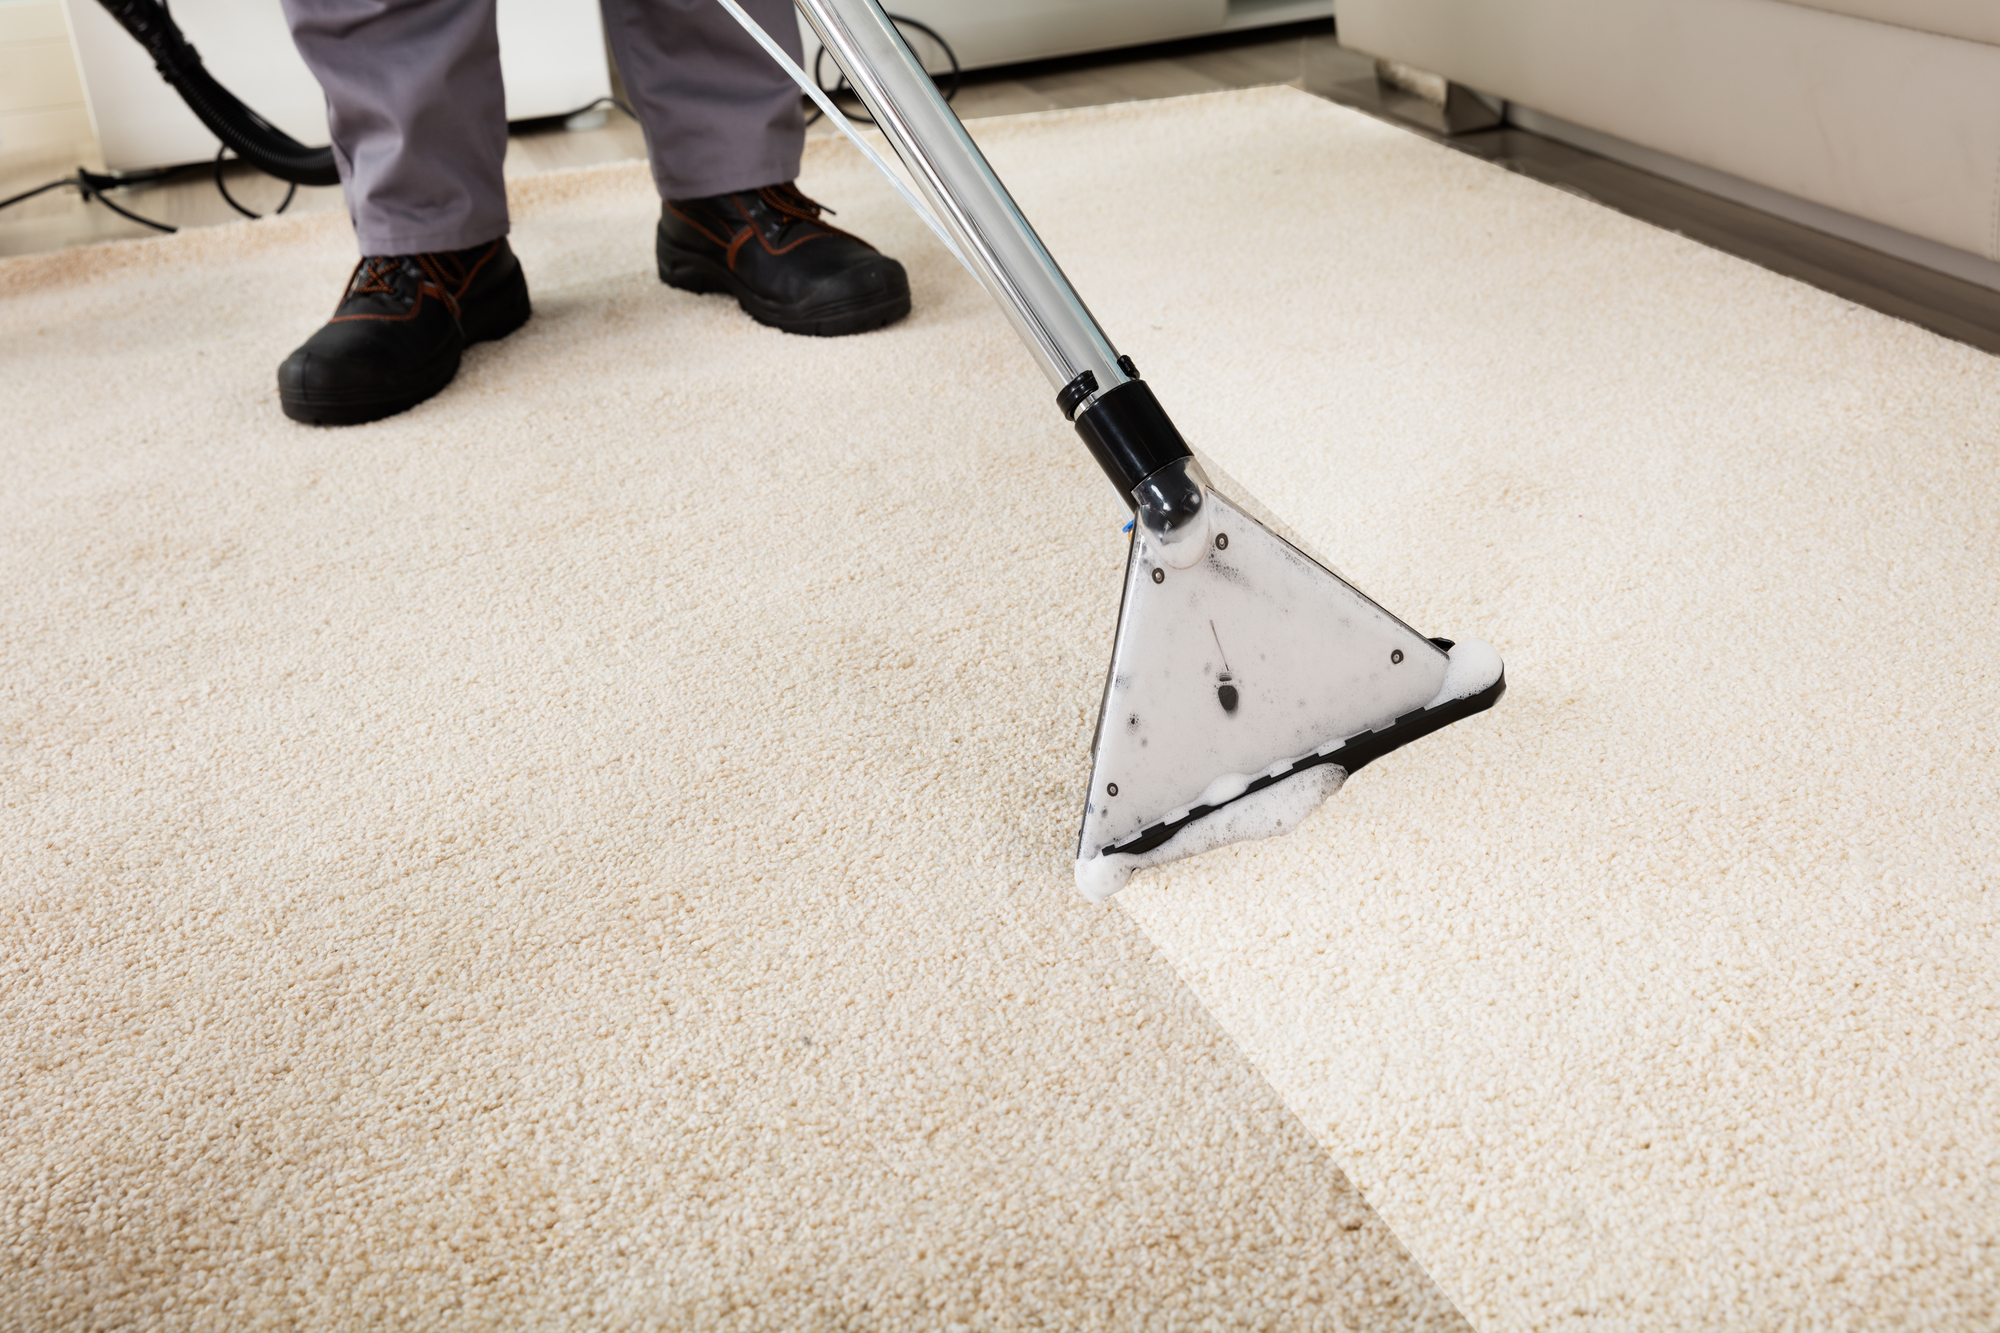 Novasteam is a Badger commercial floor cleaning services company